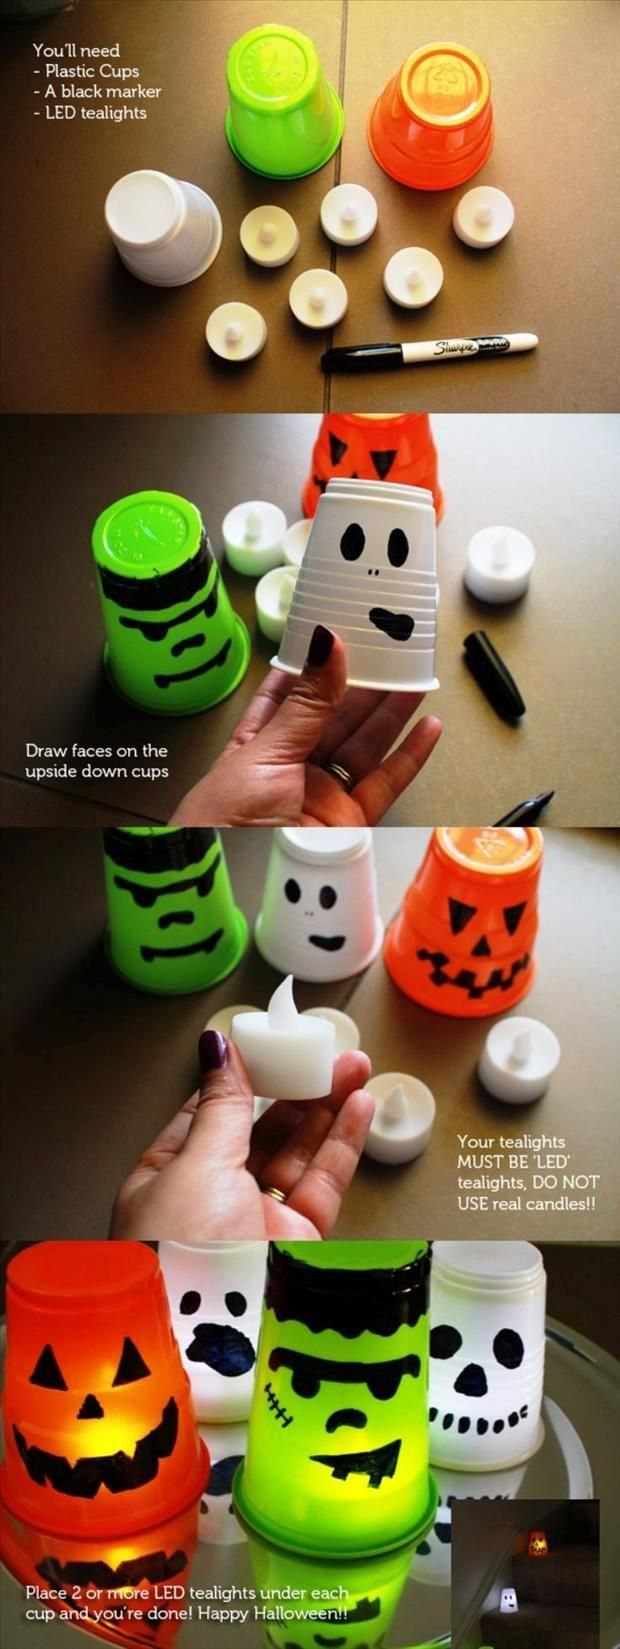 Fun DIY Halloween Craft Ideas - 35 Pics